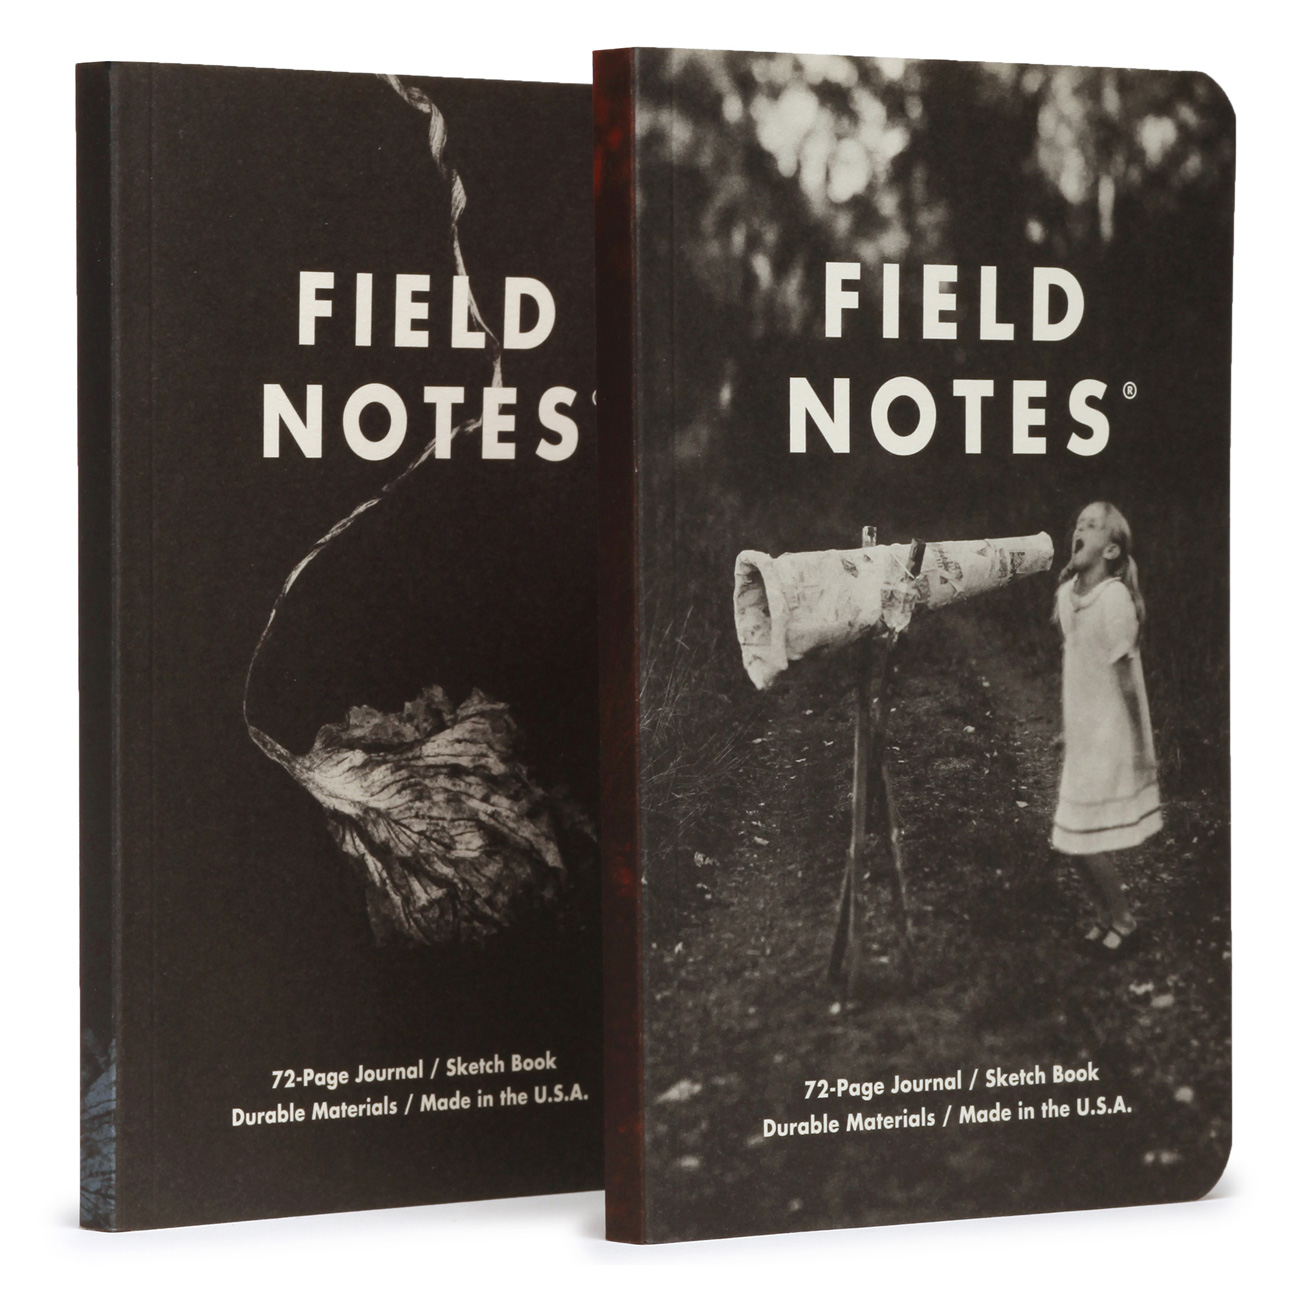 Field Notes, Maggie Rogers, Notizhefte, mystische Fotos auf Cover